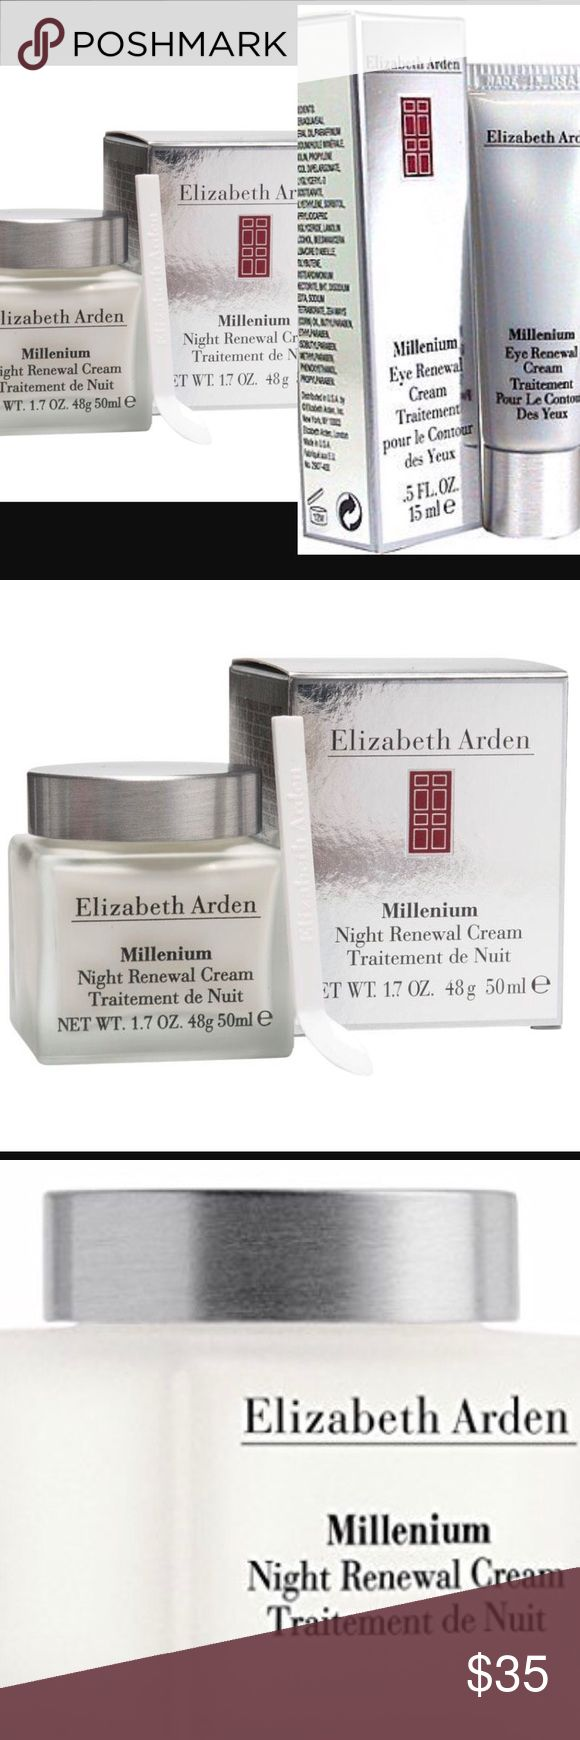 Elizabeth Arden millennium renewal cream bundle Elizabeth Arden millennium night cream NIB 1.7 oz This rich-textured cream replaces daily moisture loss while you sleep and smoothes the look of fine lines. Clinically and dermatologist tested.  Elizabeth Arden Millenium Eye Renewal Cream--/0.5OZ Design House: Elizabeth Arden new in box Sephora Makeup Eyeliner